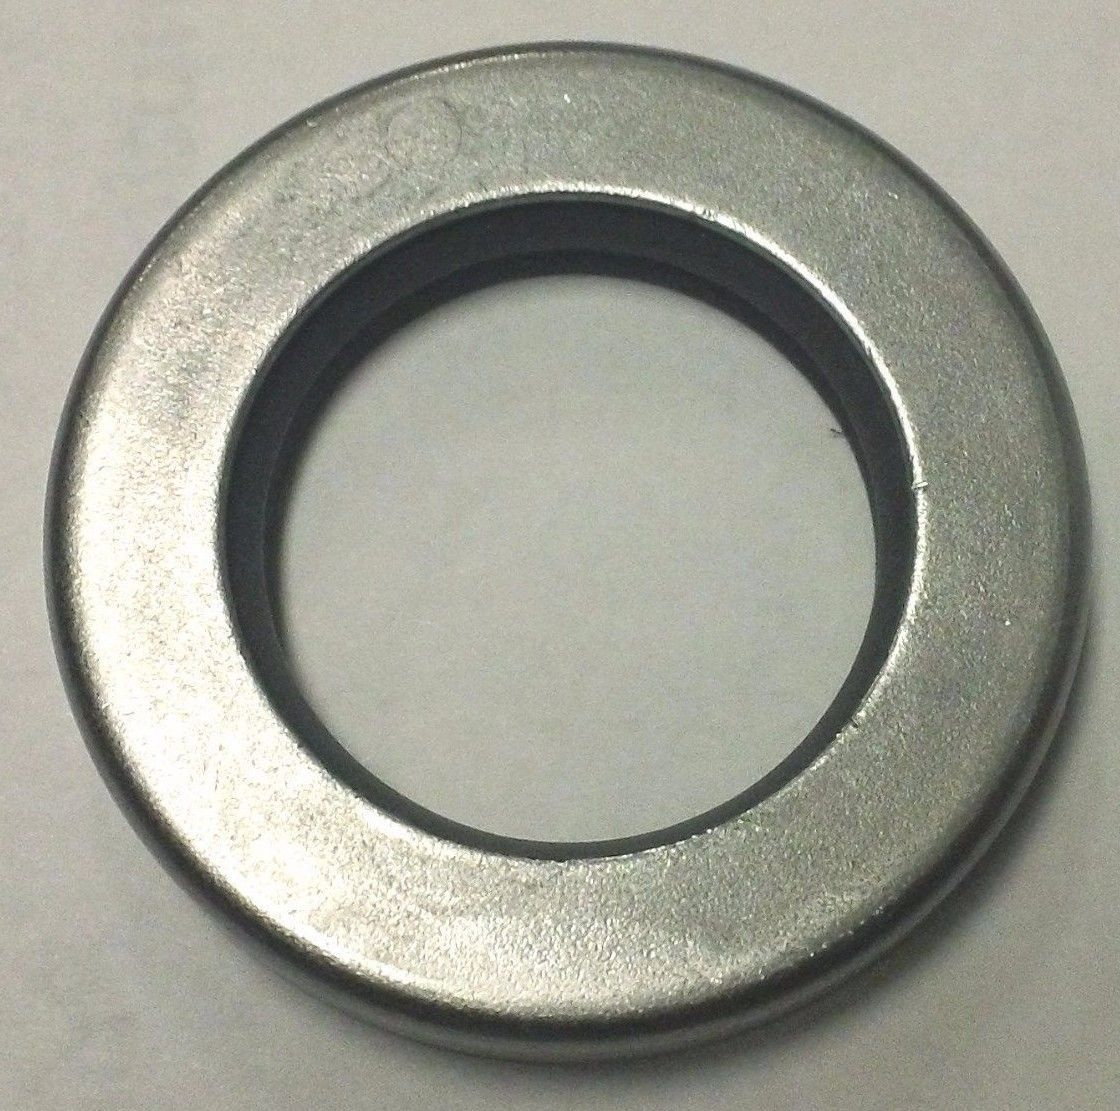 Primary image for X73-50-9, 391-2883-119, Commercial, Parker, Permco, Motor Seal